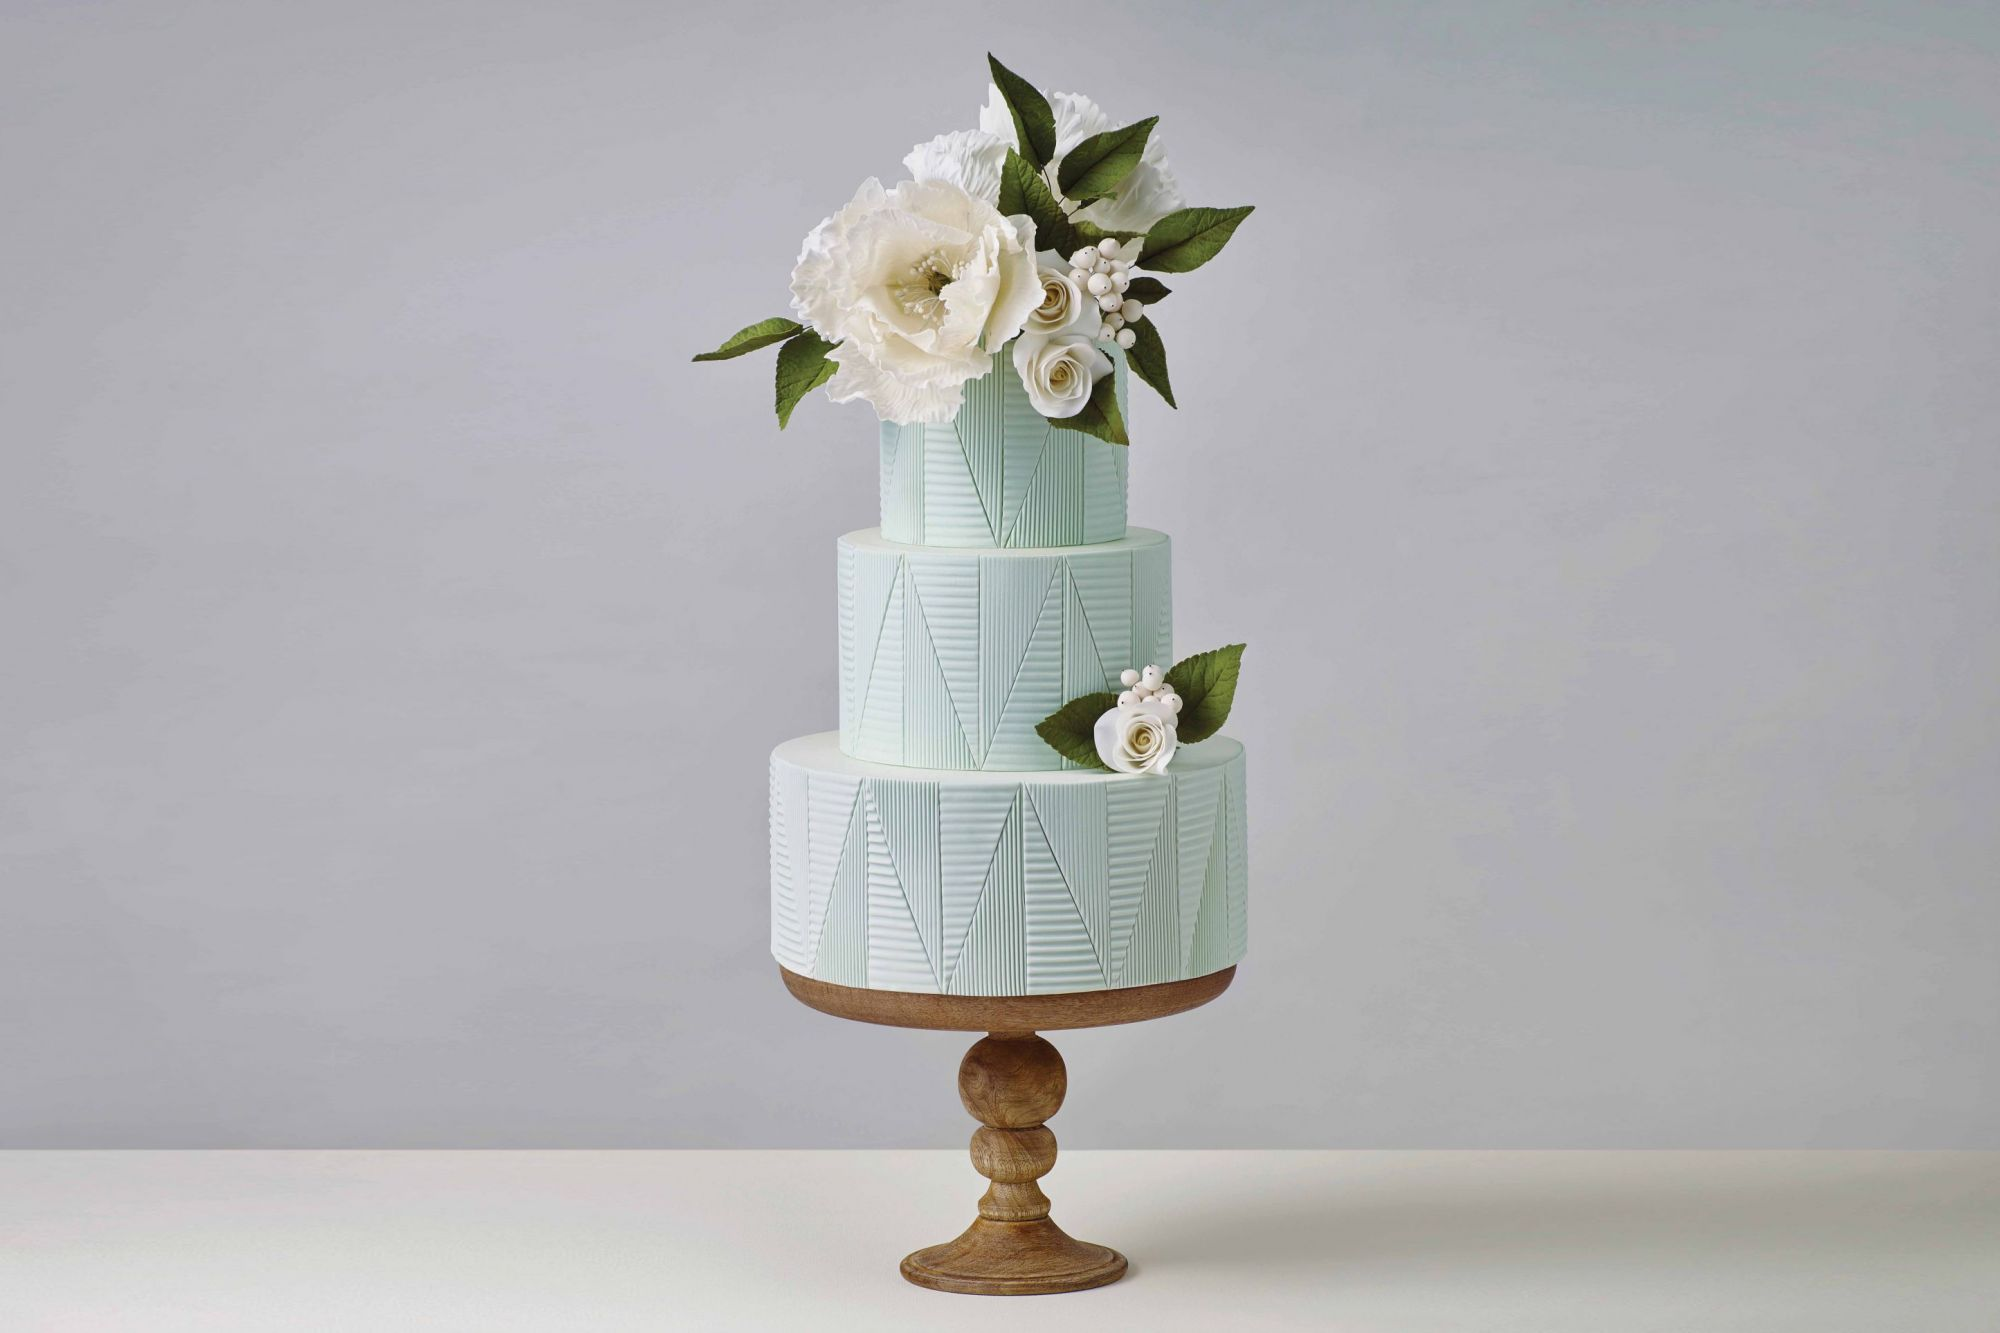 The Best Bespoke Wedding Cake Designers In Singapore